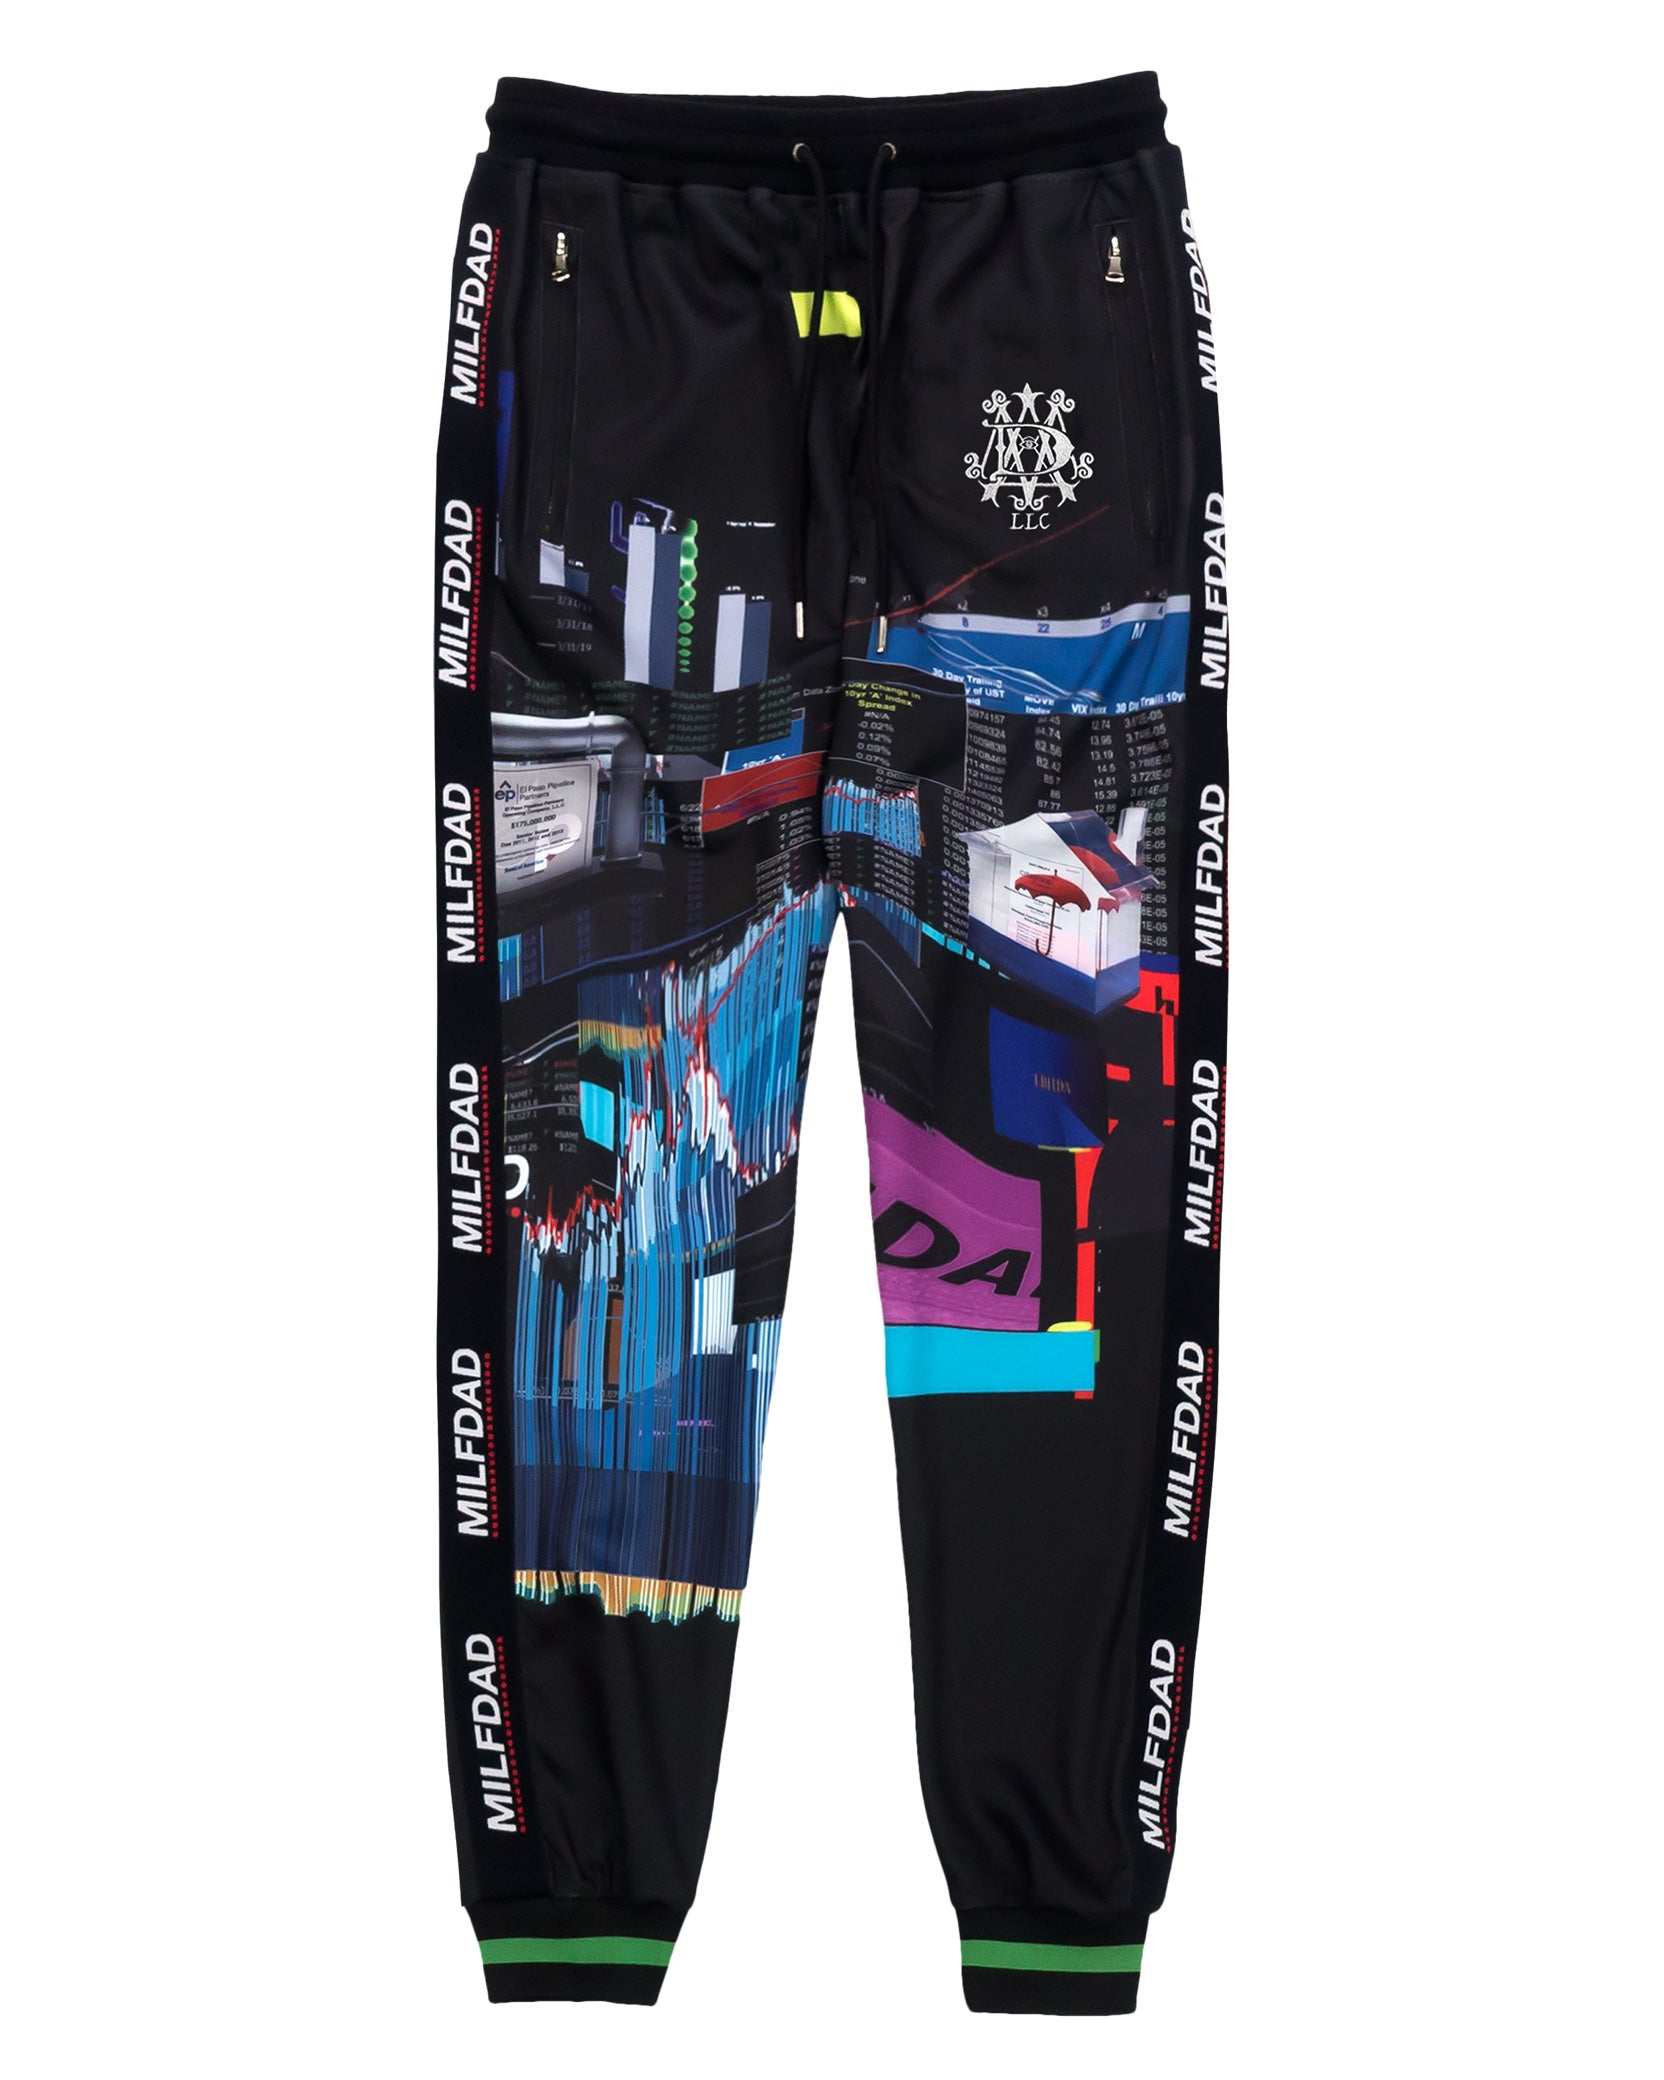 TRACK PANT - SPREADSHEET / BLACK